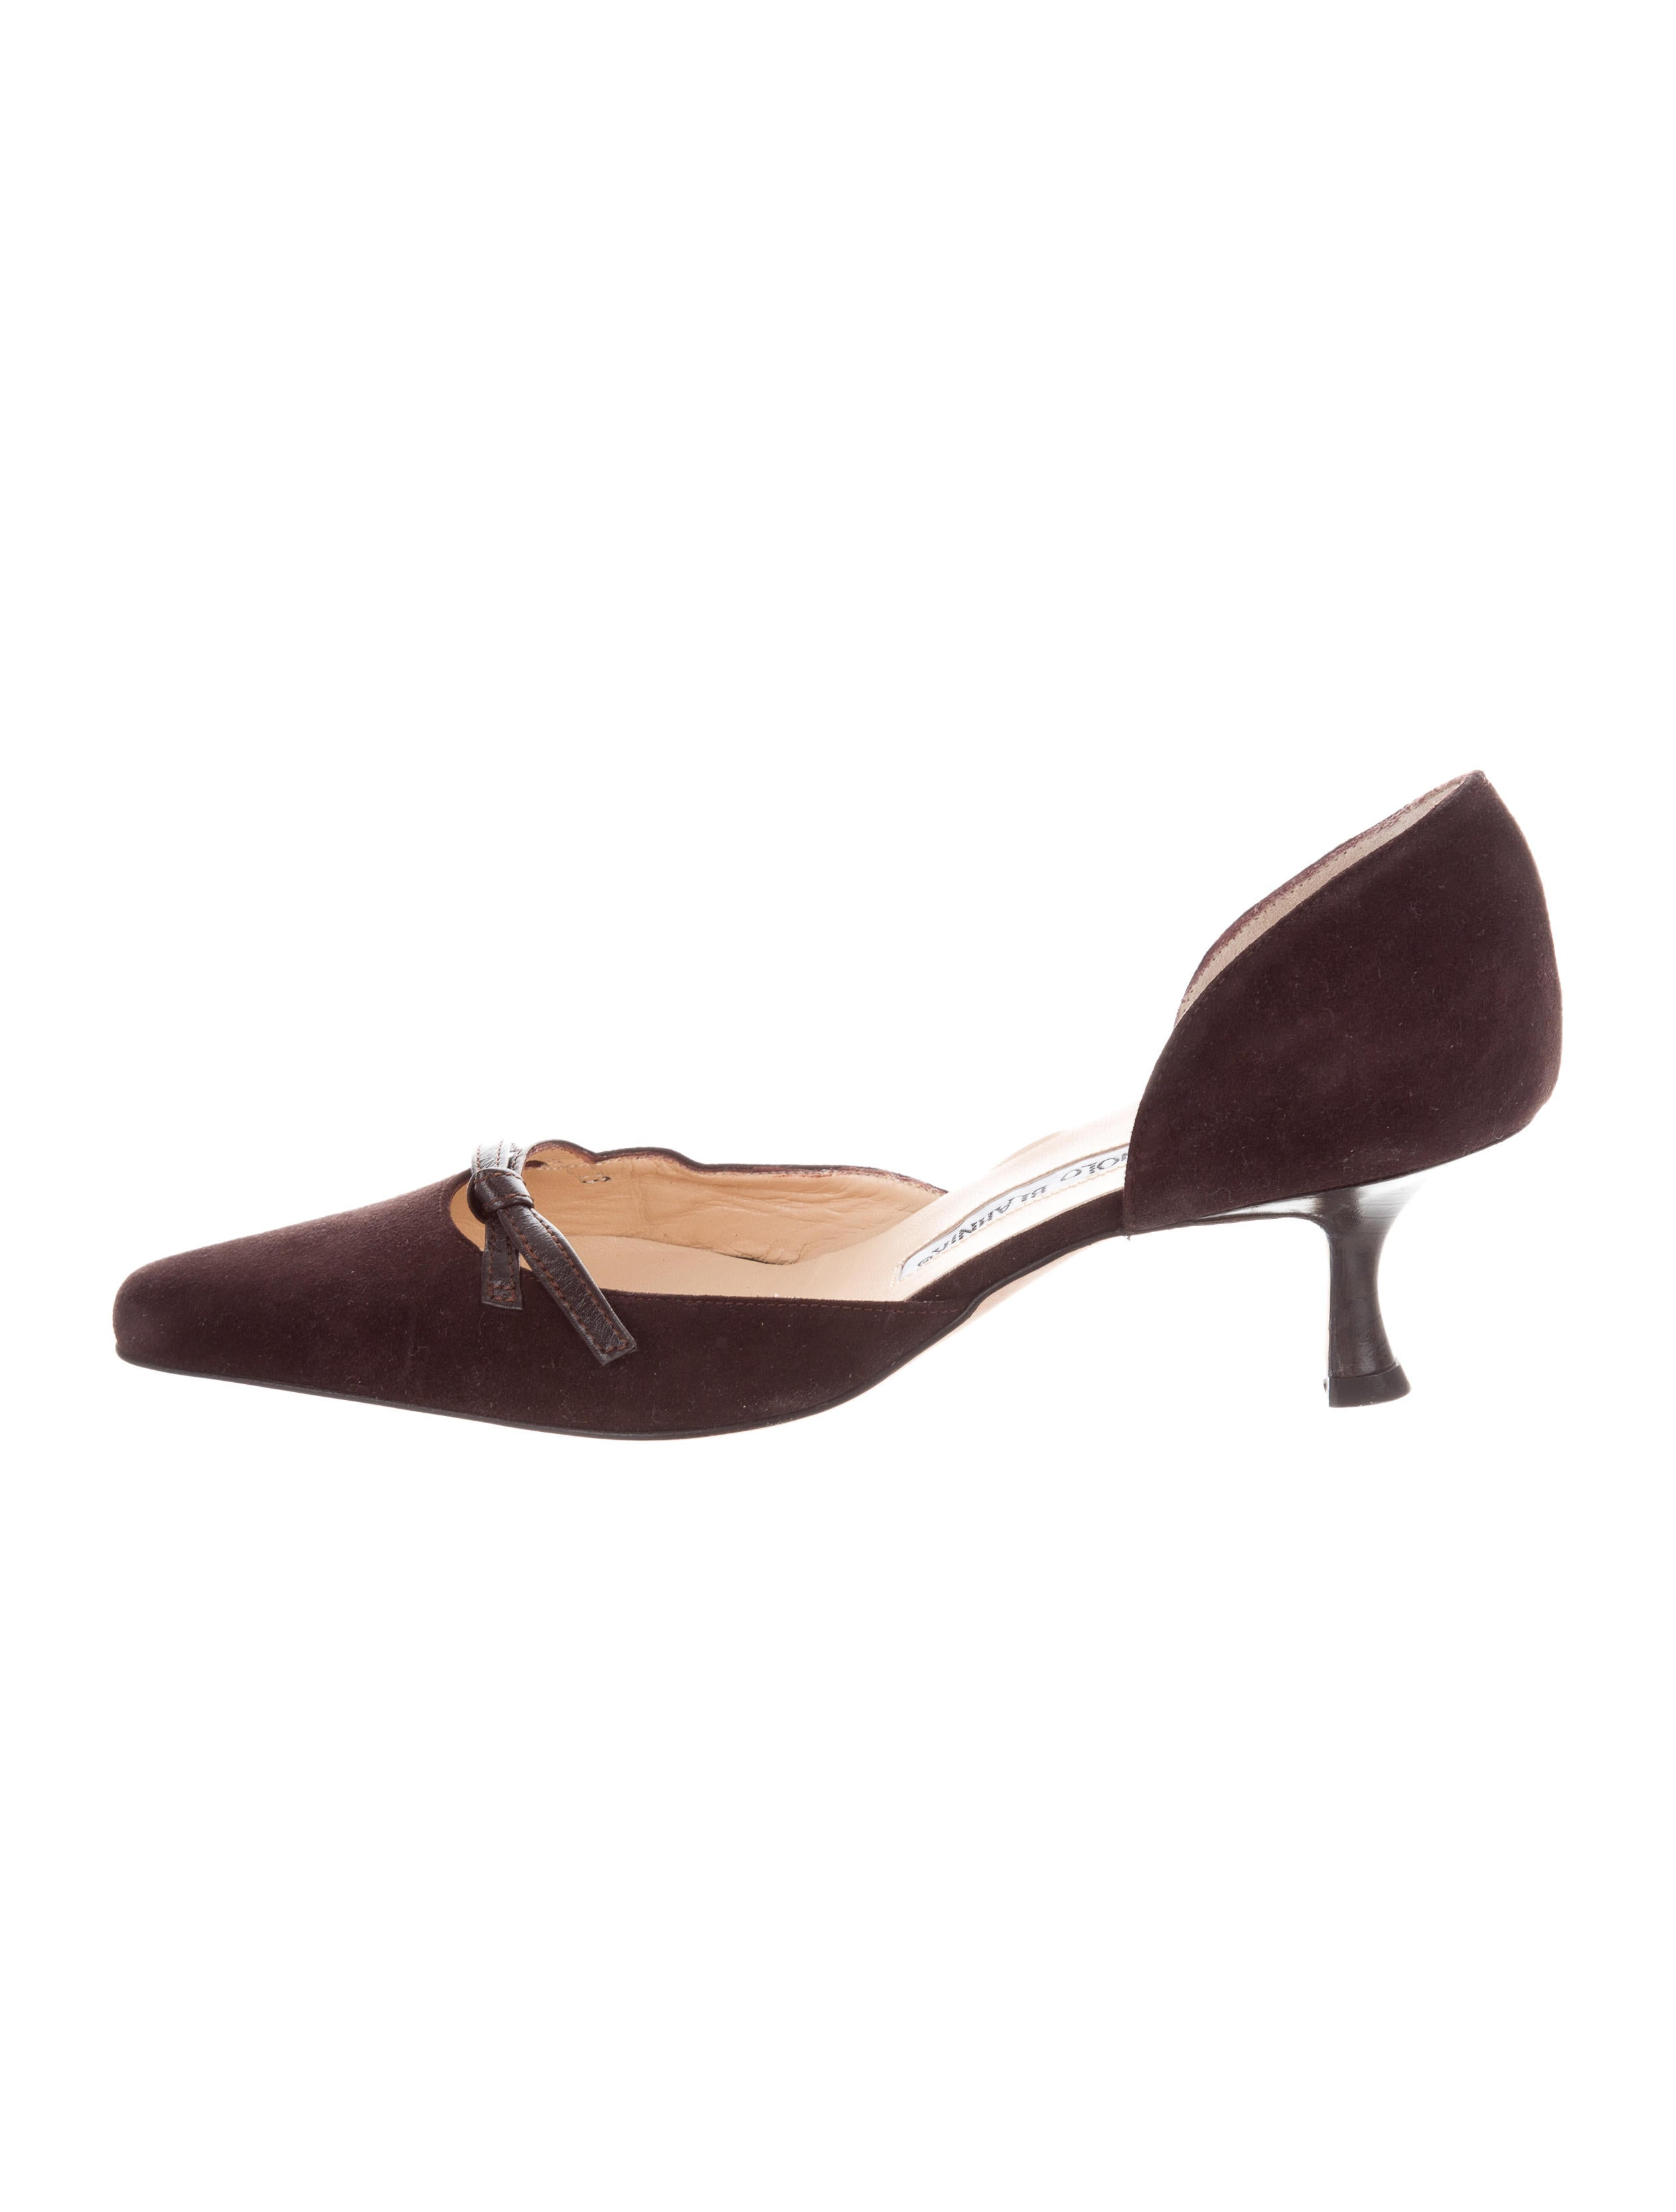 Manolo Blahnik Knot-Accented D'Orsay Pumps looking for outlet pick a best cheap pick a best ZTsrm